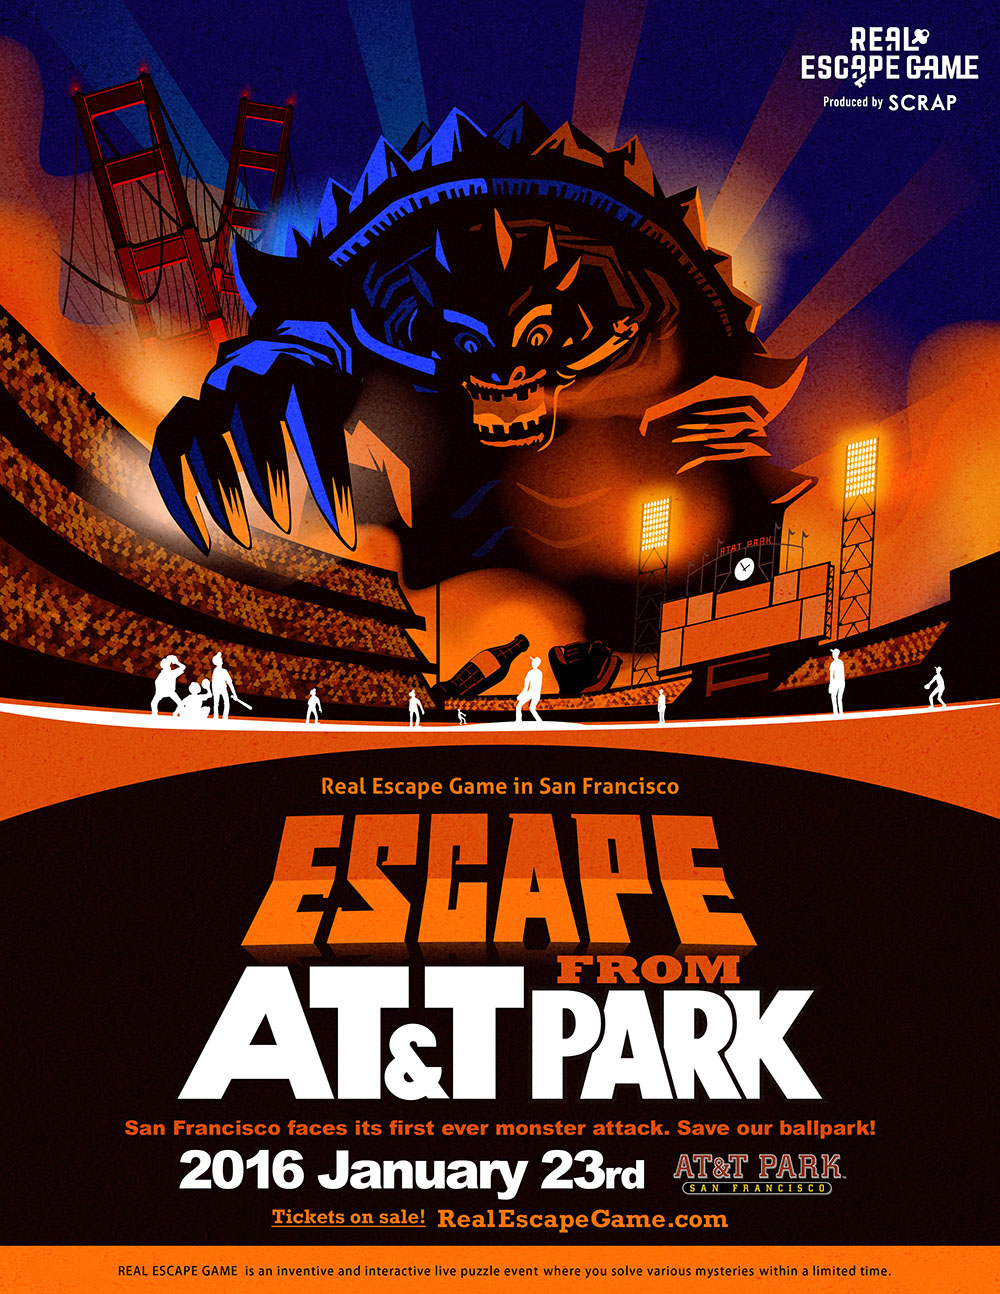 San Francisco faces its first ever monster attack. Save our ballpark!